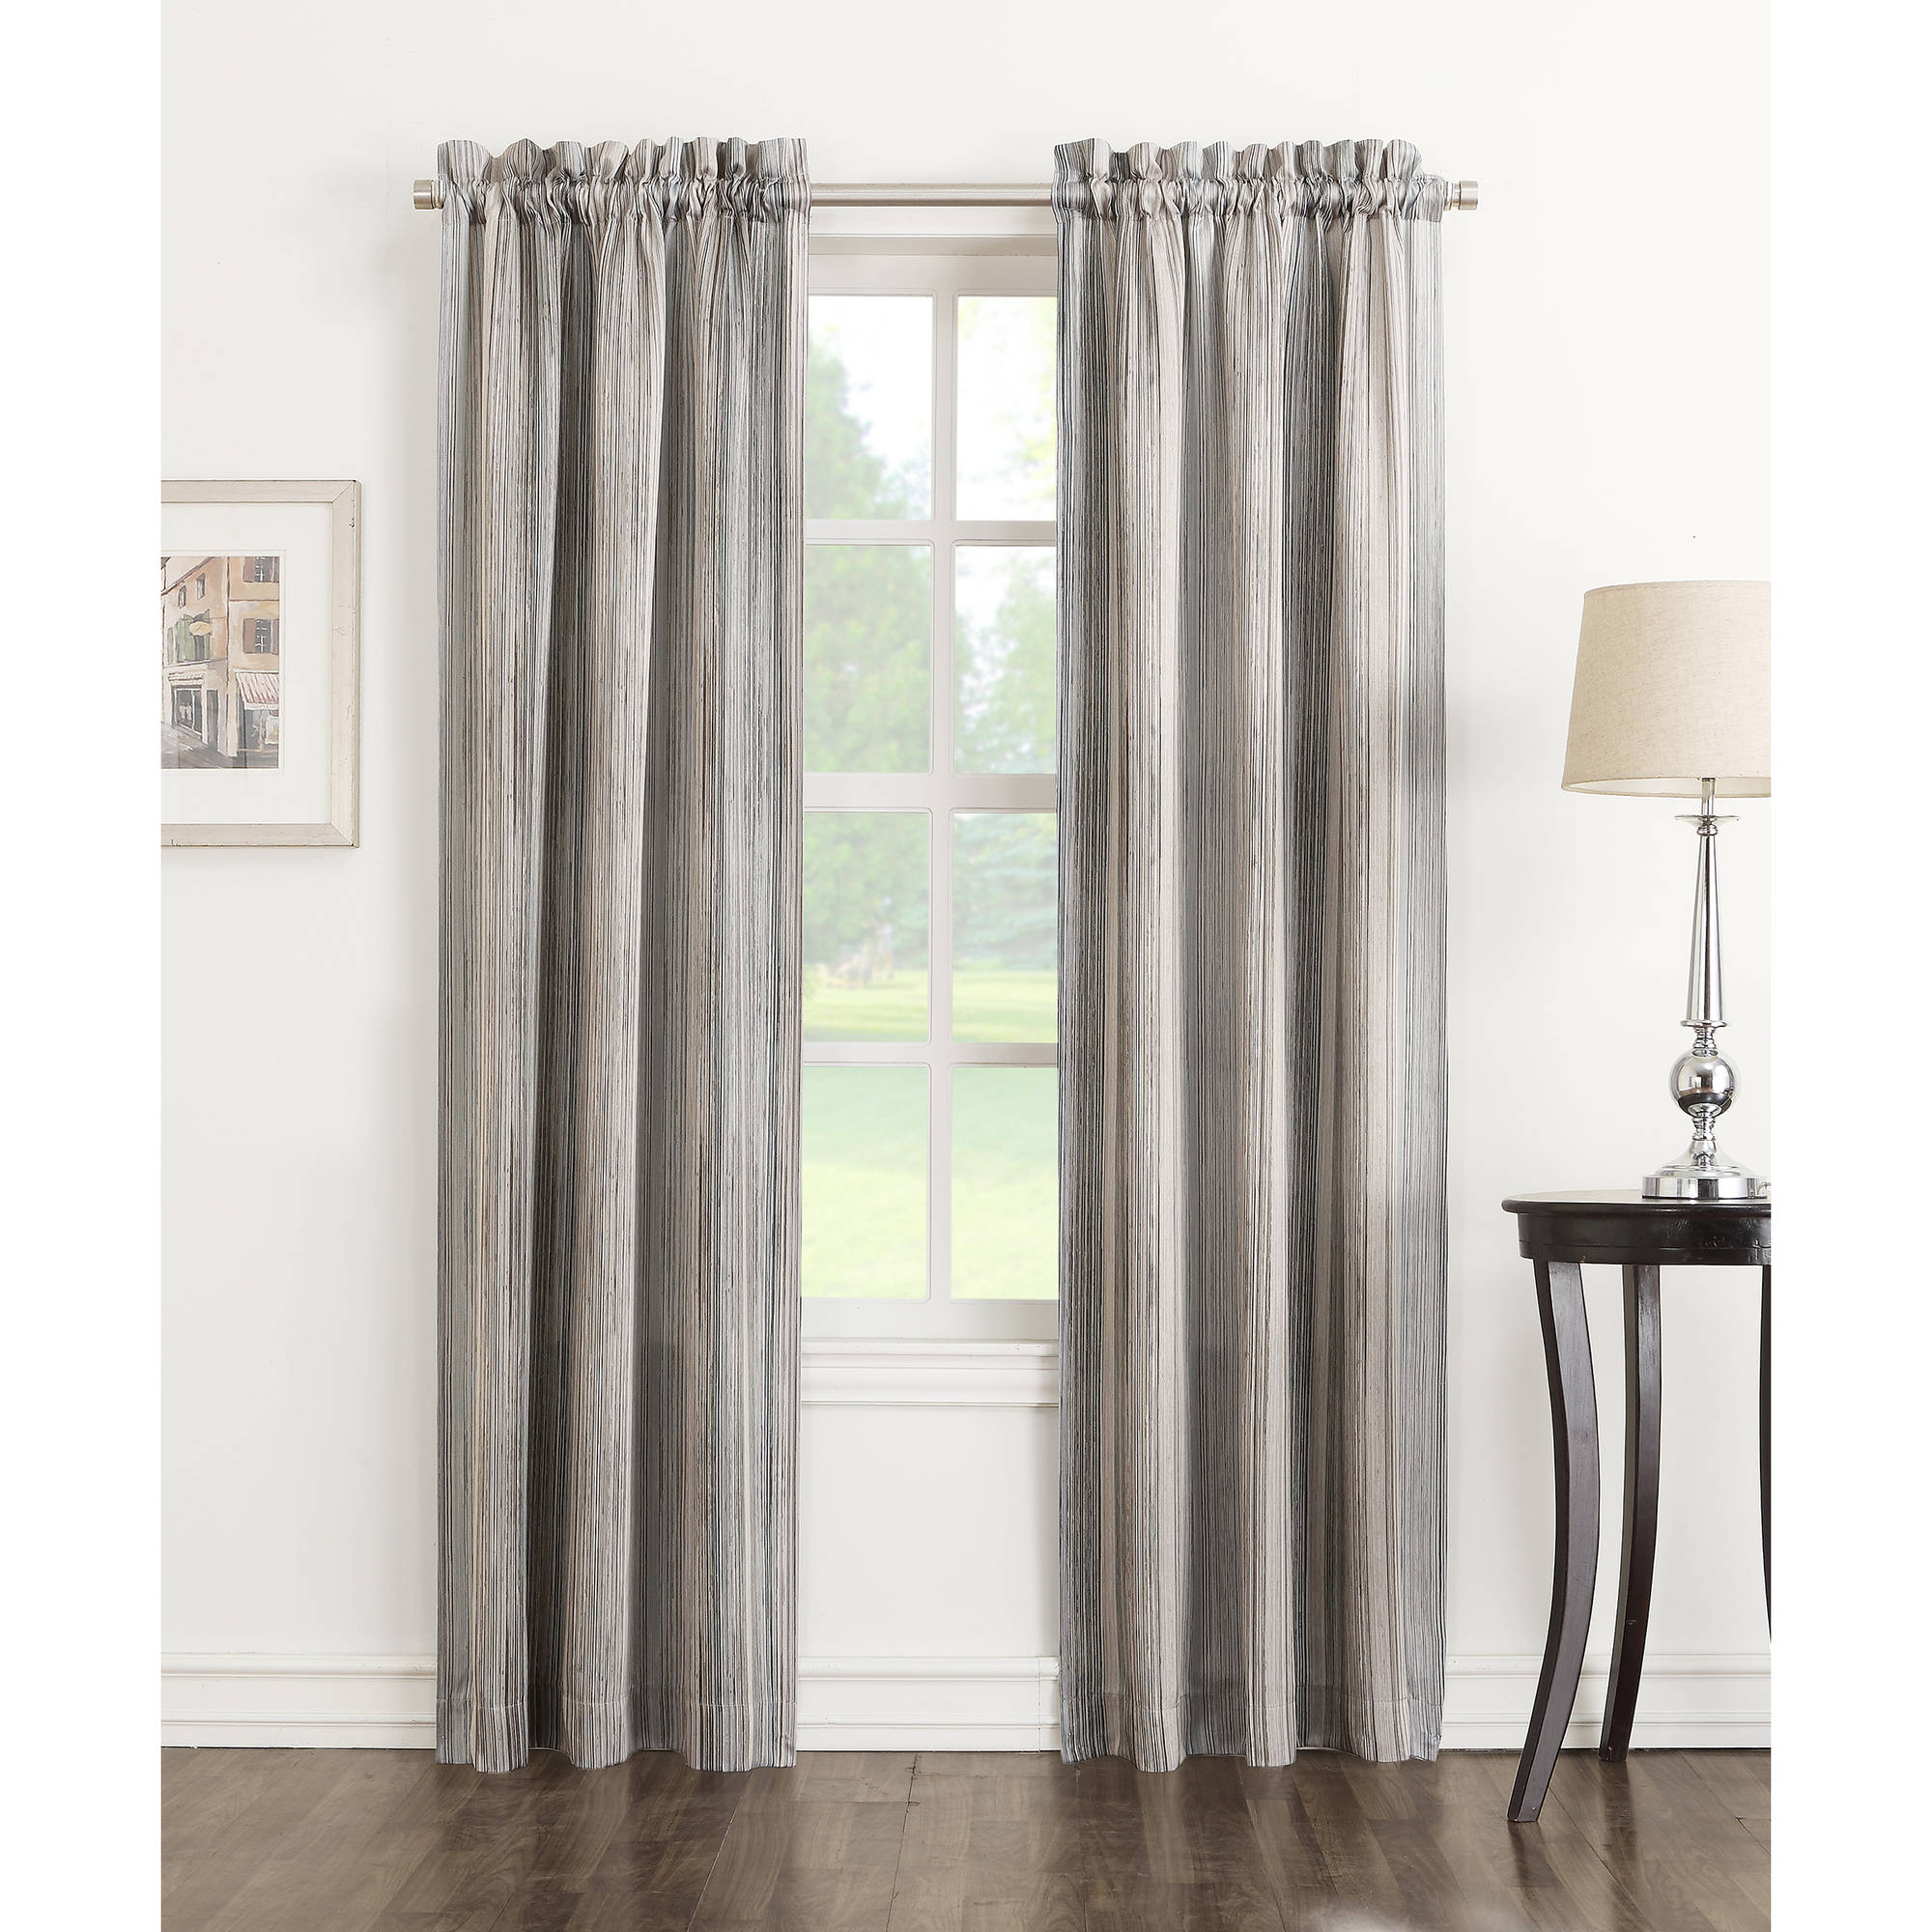 No 918 Lane Room Darkening Curtain Panels Set Of 2 Stone